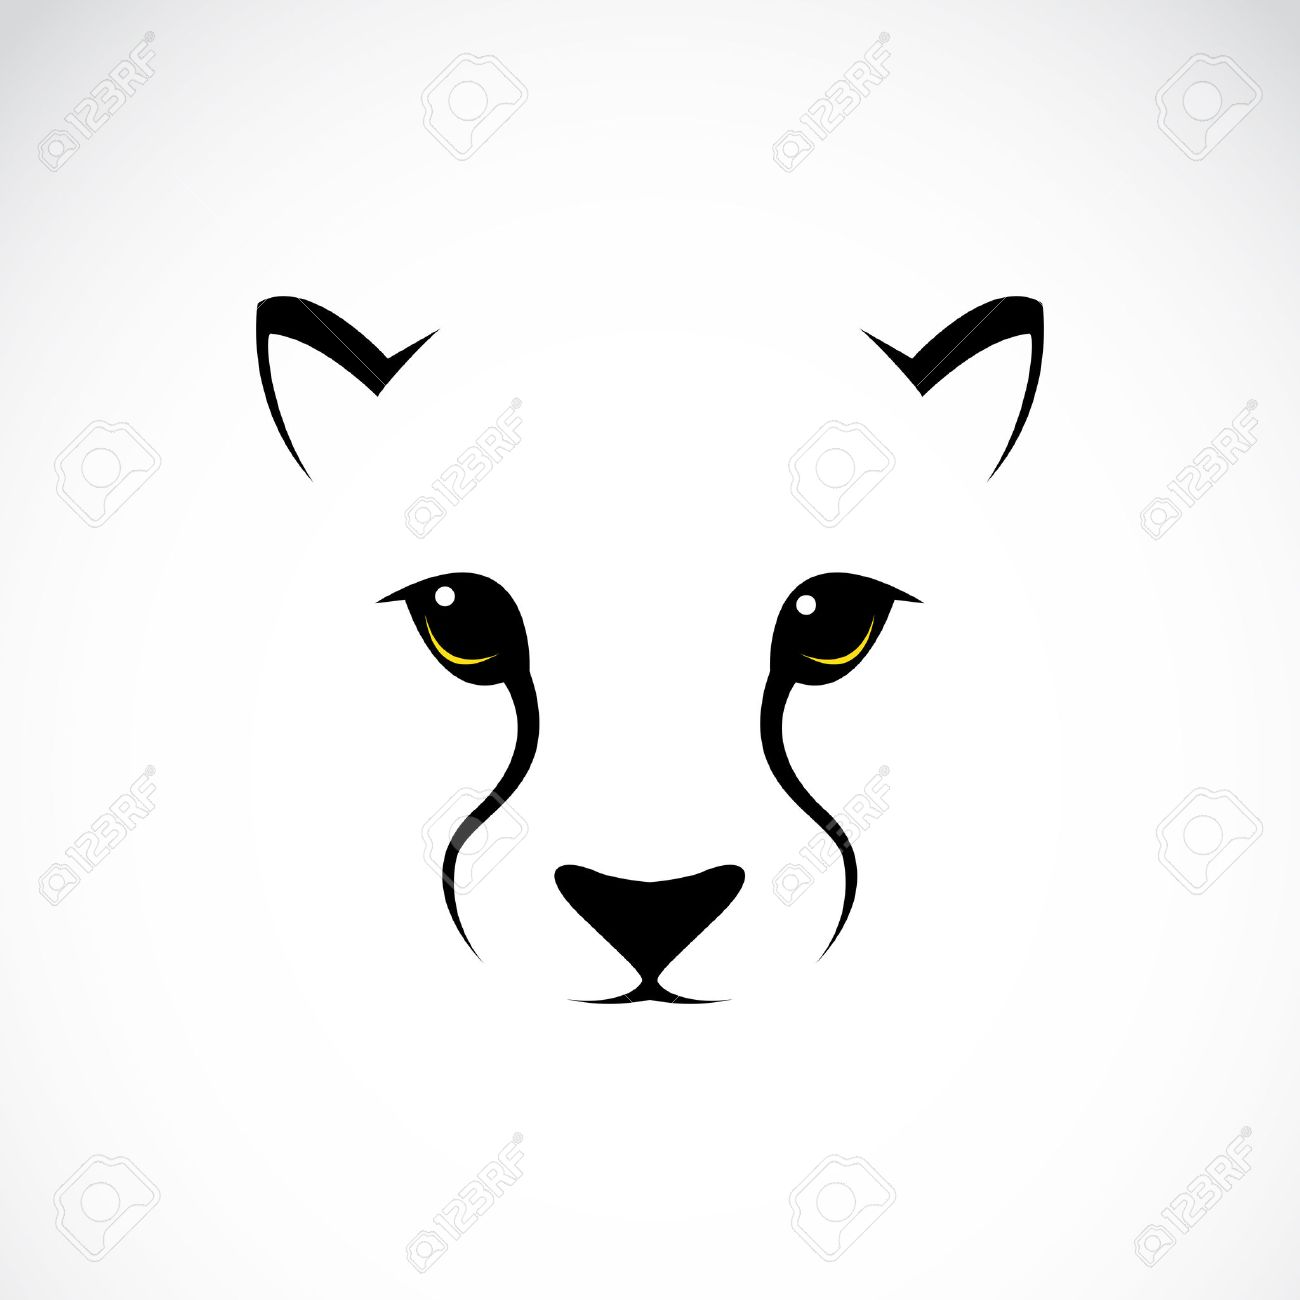 Vector Image Of An Cheetah Face On White Background Royalty Free